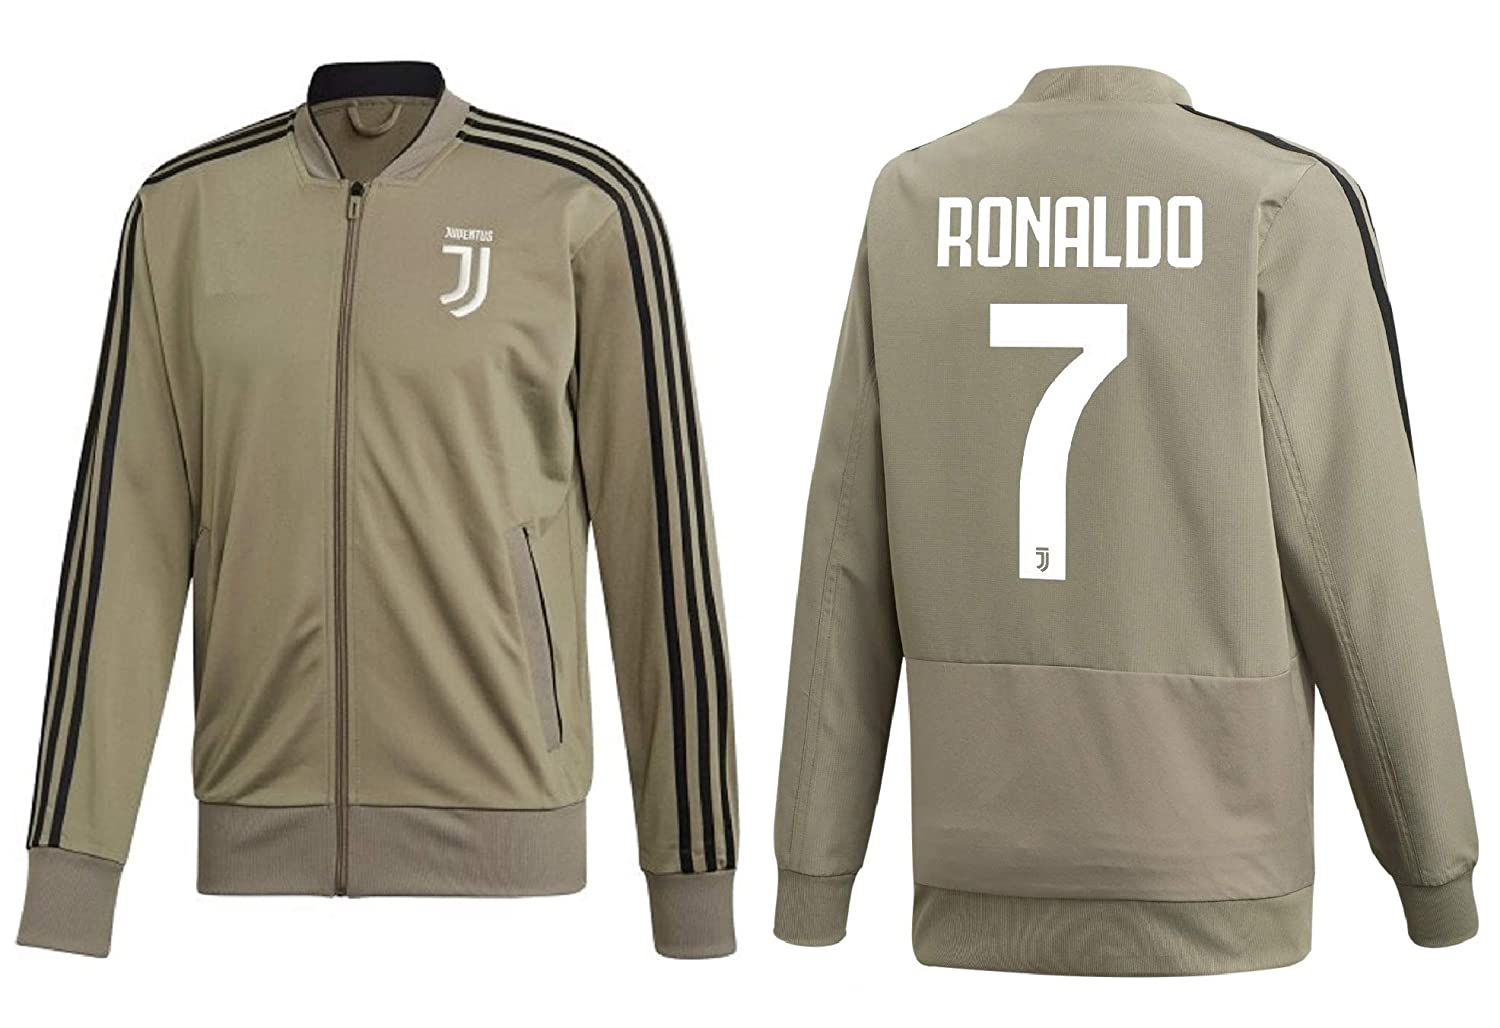 df46d186a Amazon.com   Kitbag Cristiano Ronaldo Juventus  7 Kids Soccer Tracksuit  Track Jacket with Pants Youth Sizes   Sports   Outdoors